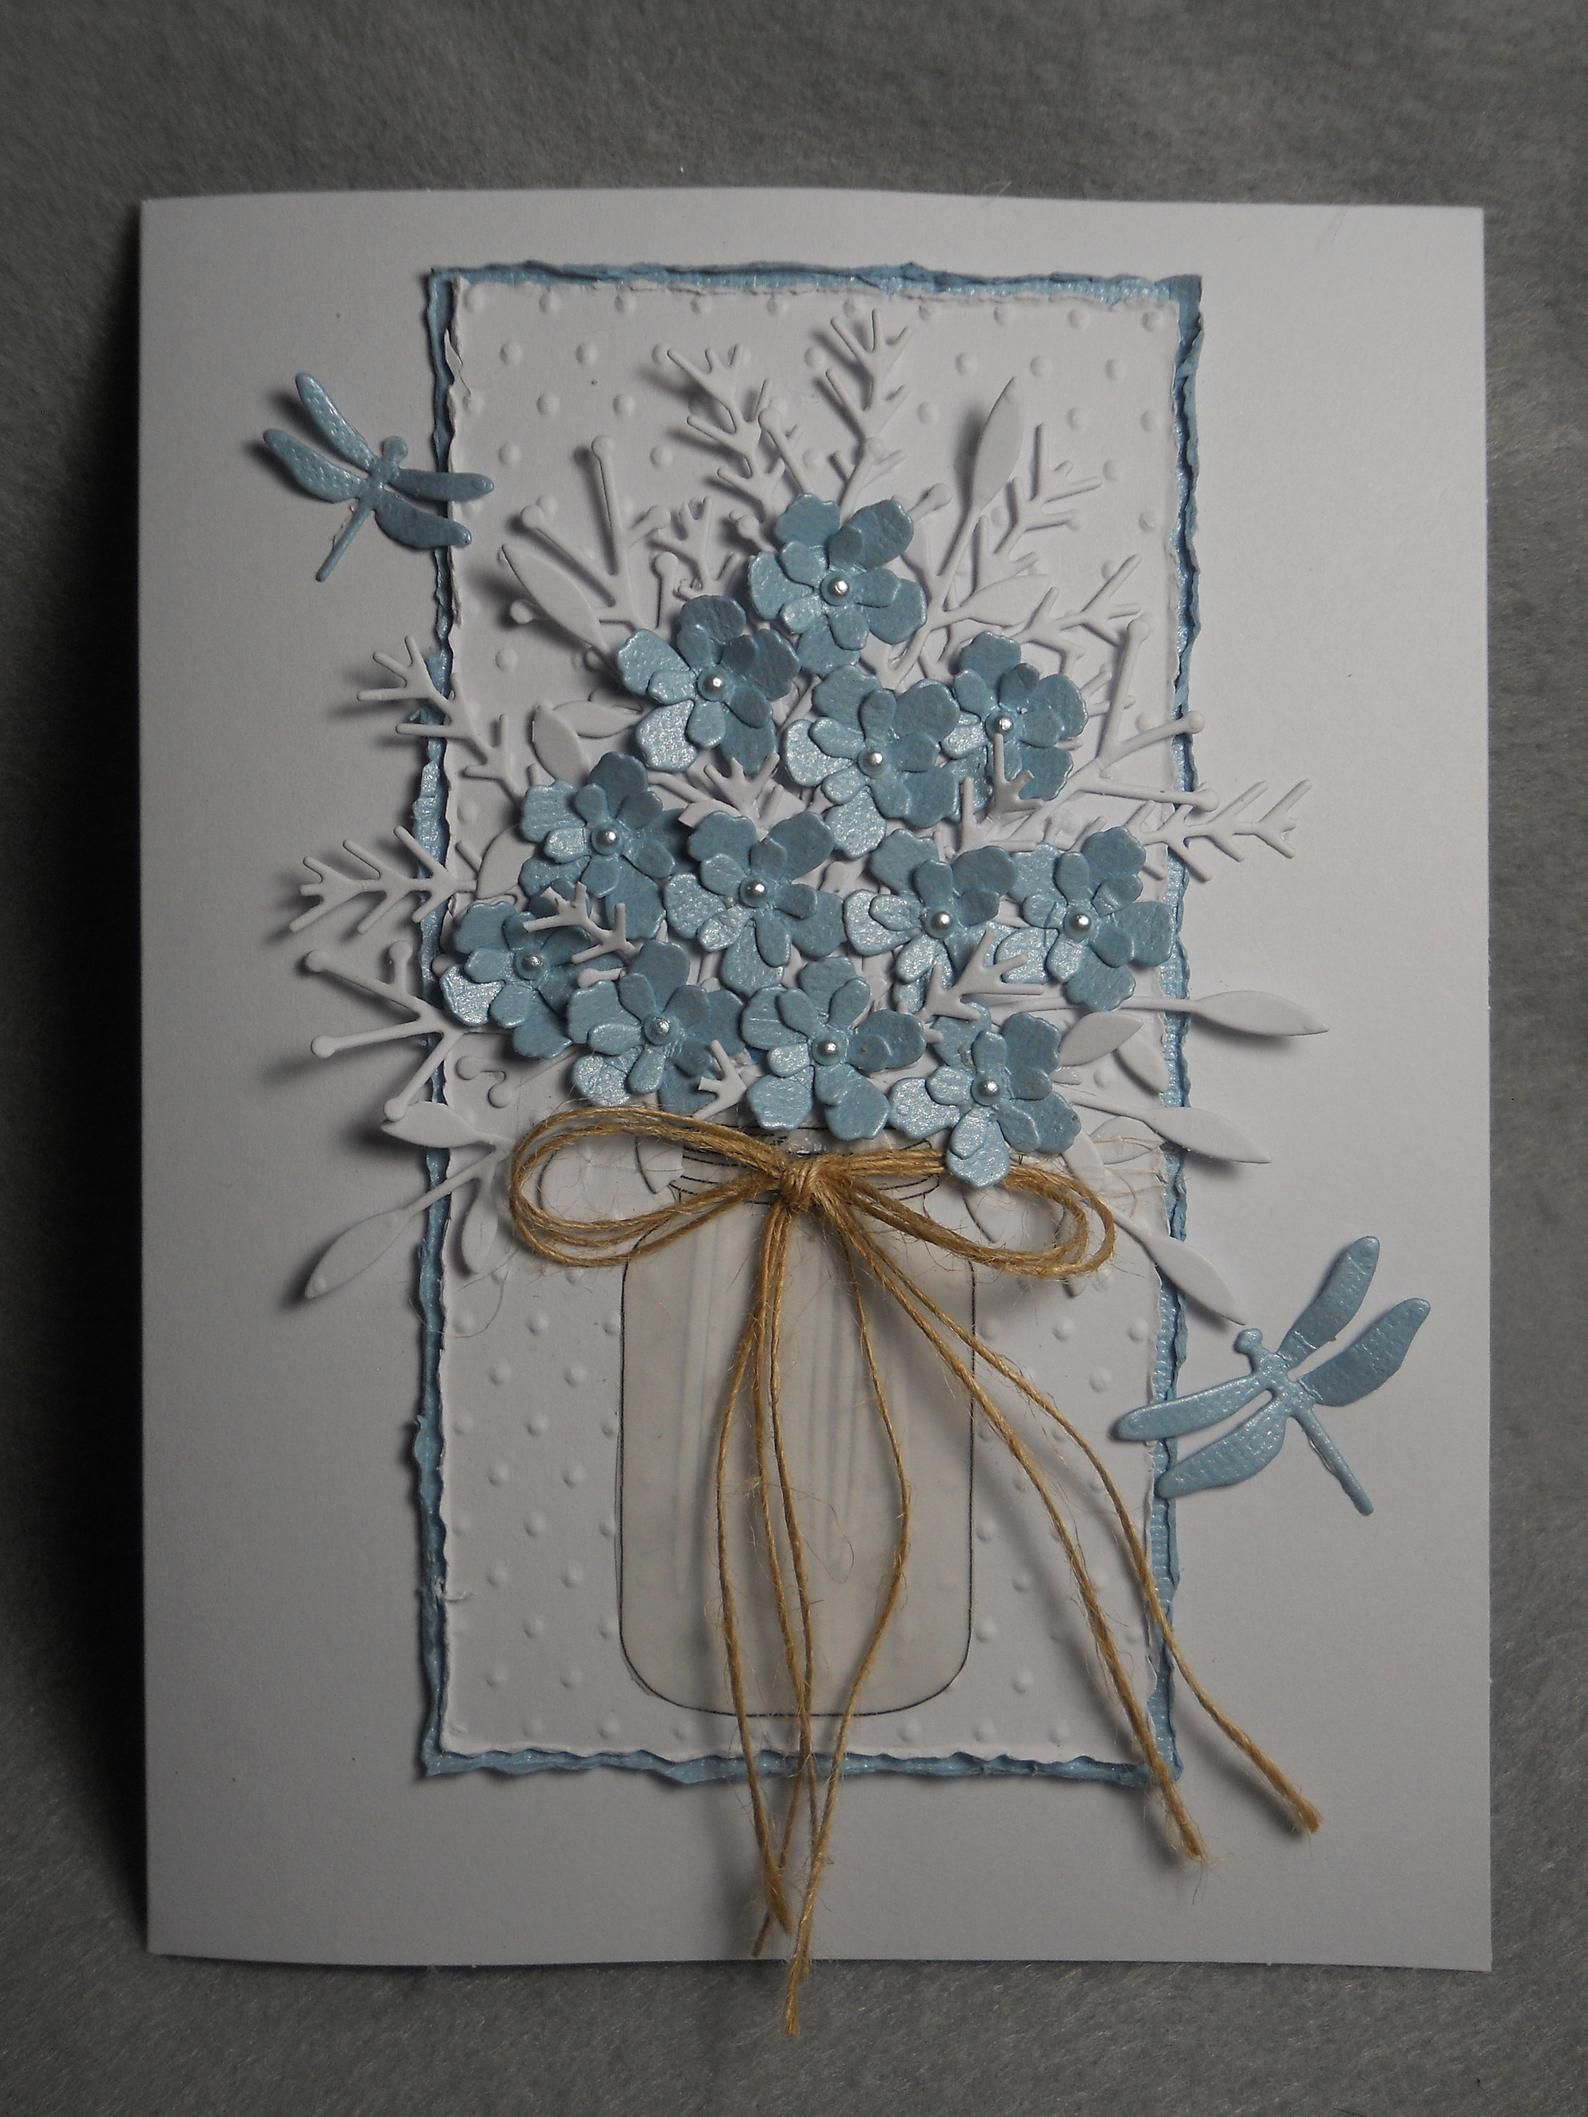 Blue bouquet, blue flowers, lacy white foliage, mason jar w flowers, blue dragonfly accents, embossed, very dimensional, blue bouquet